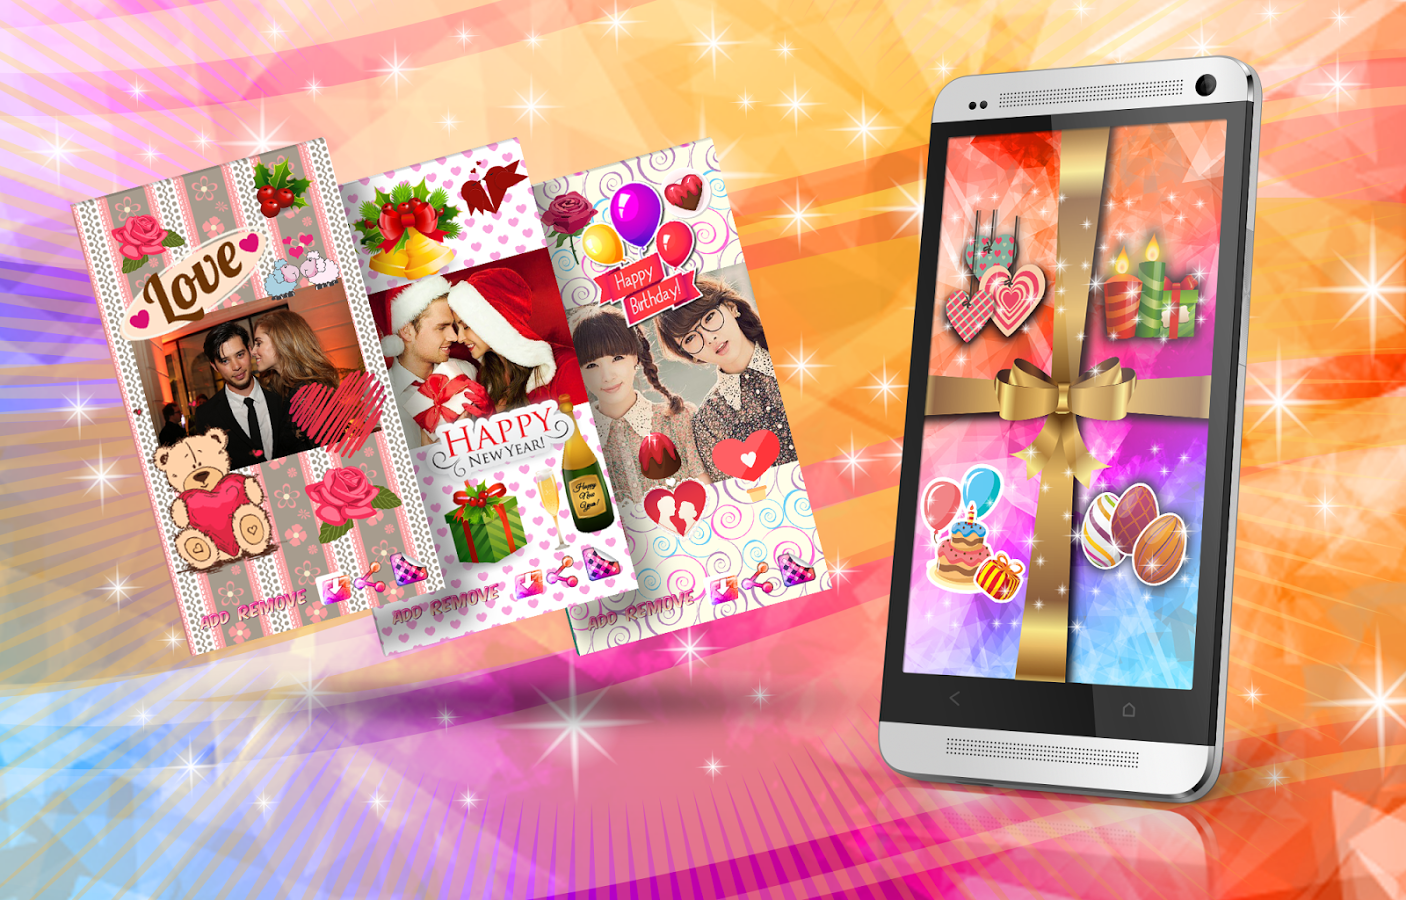 Top 7 Greeting Card Apps For Android To Show Your Love